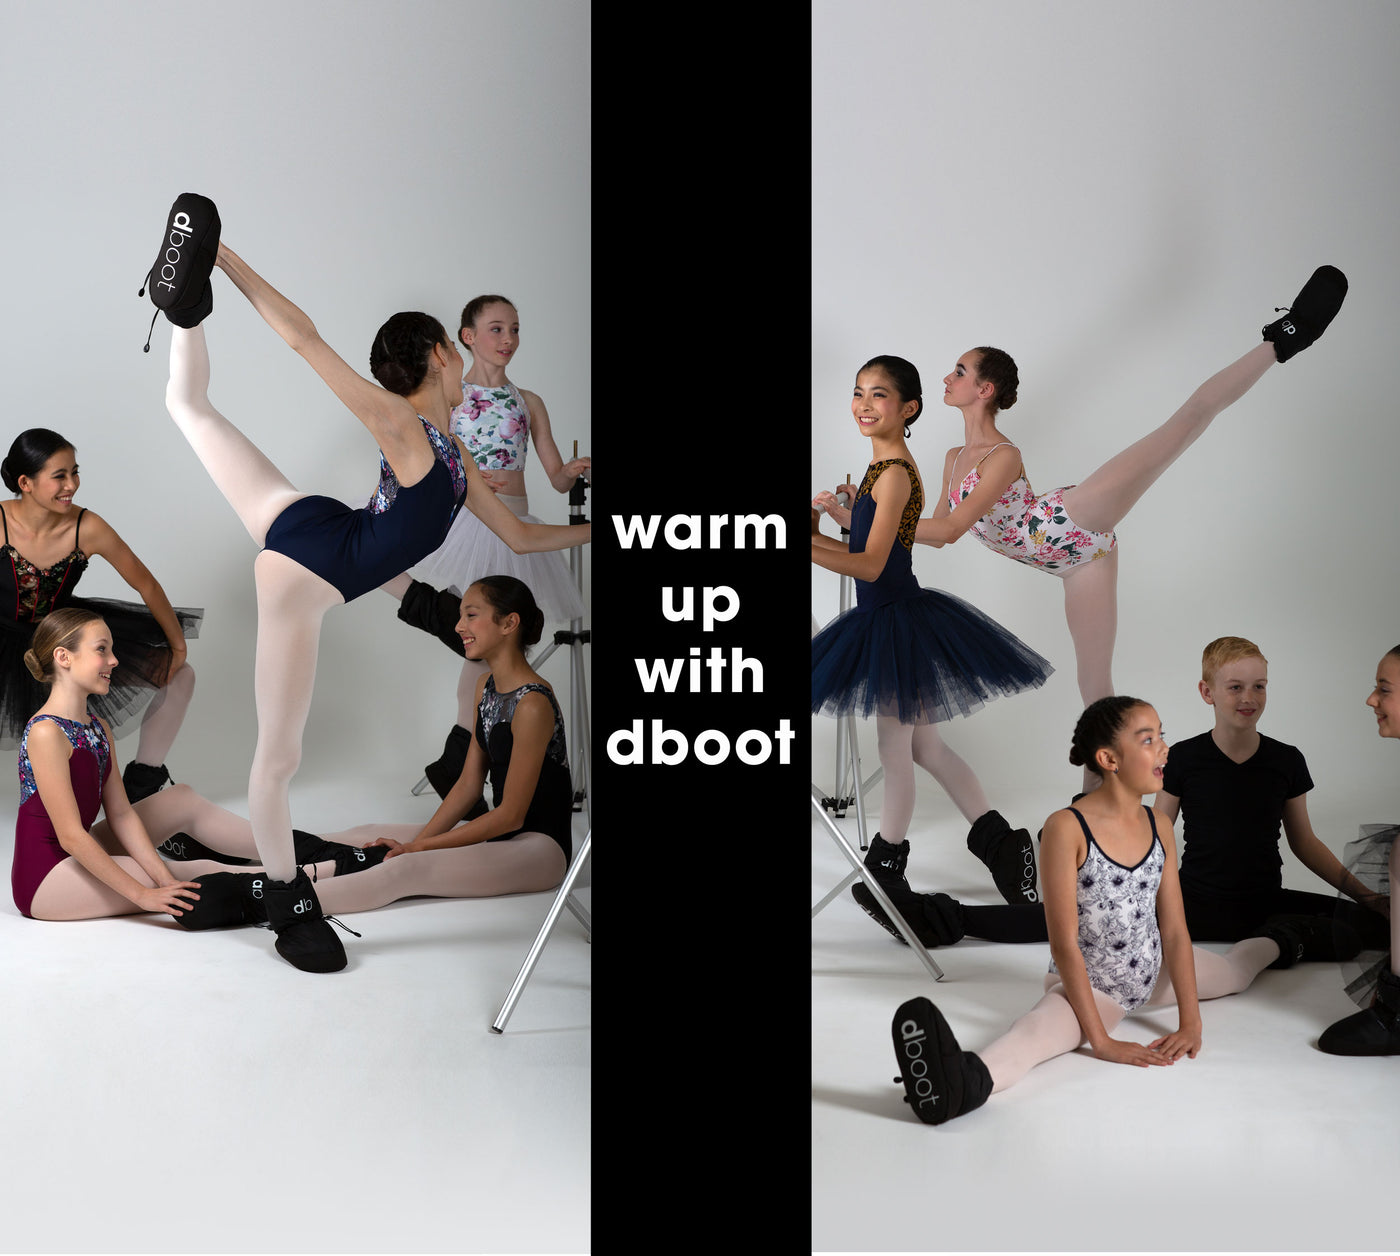 warm up boots black ballet dancers